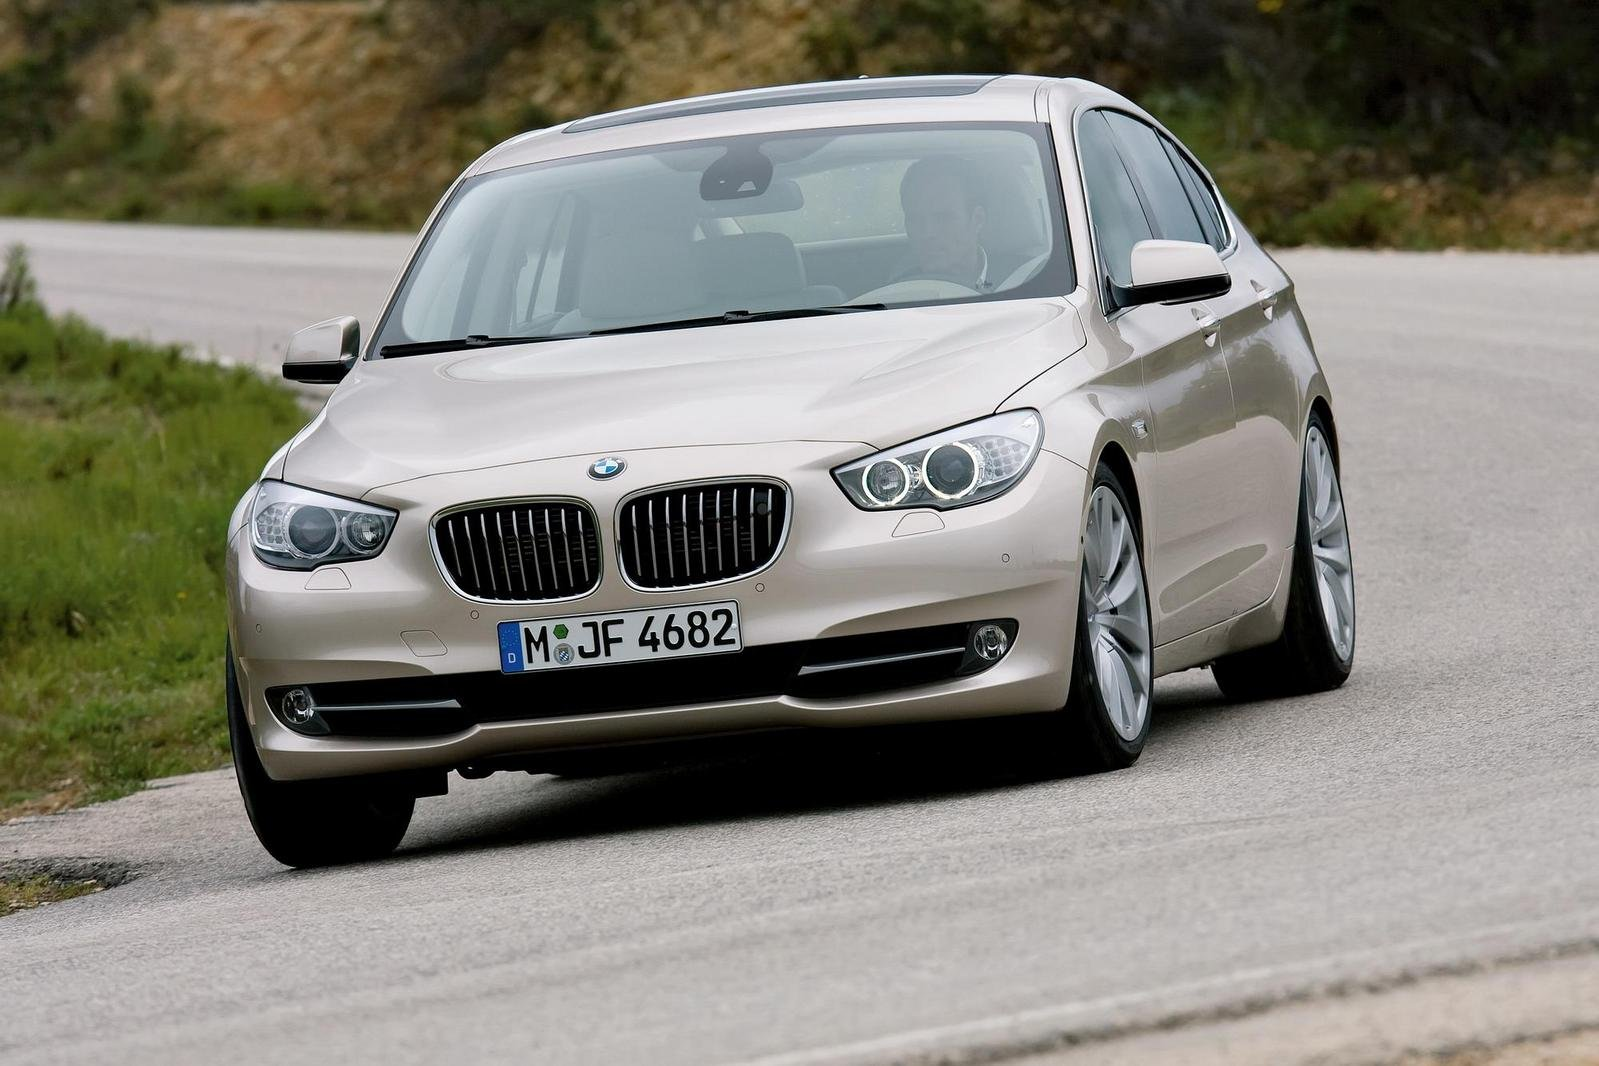 Bmw 5 Series Gran Turismo Review 2010 Bmw 5 Series Gran Turismo Review Top Speed